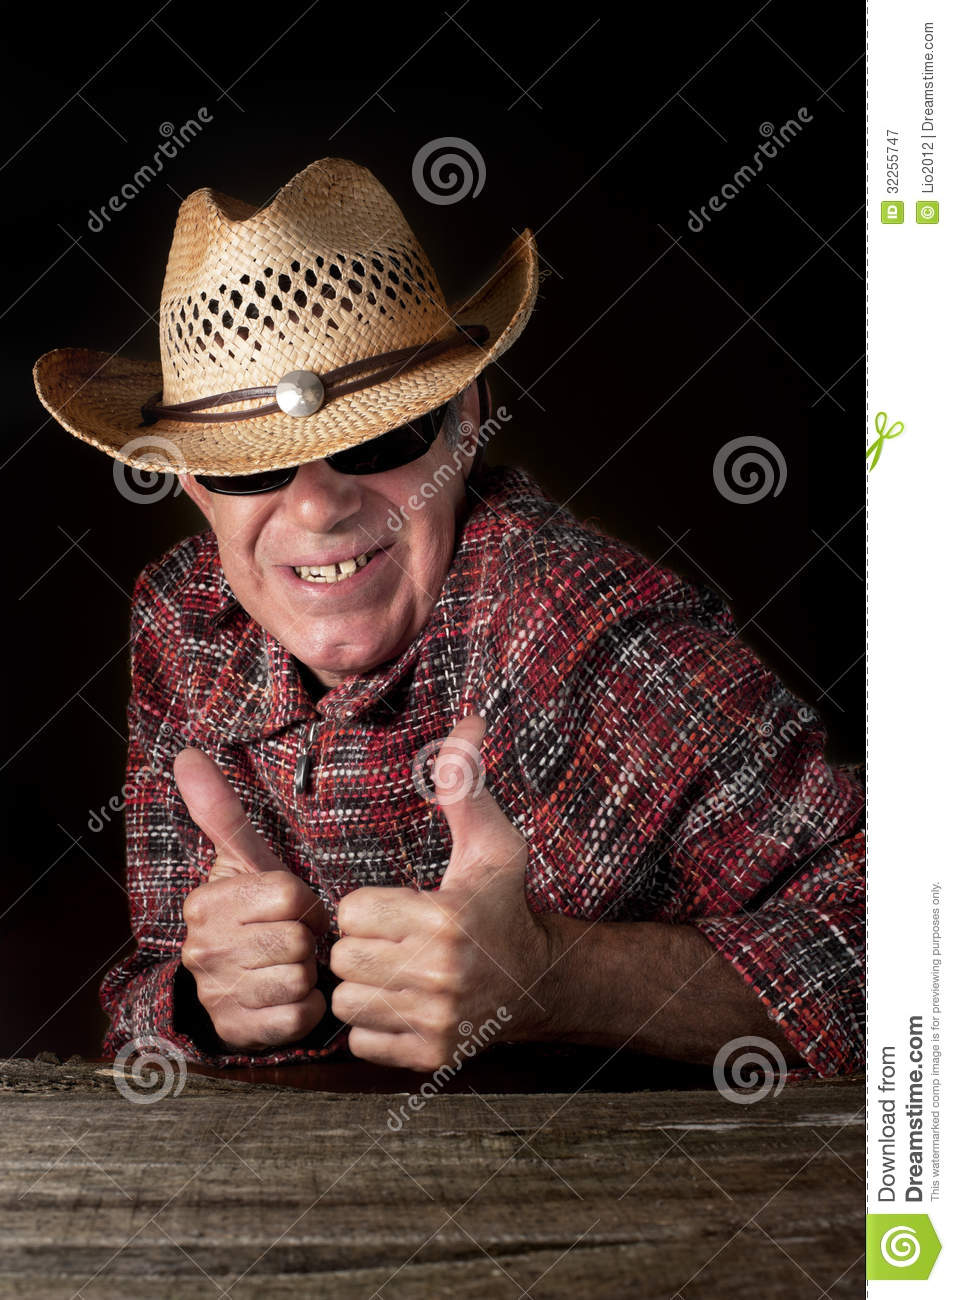 Funny Cowboy Making OK Hand Gesture Royalty Free Stock Photography ...